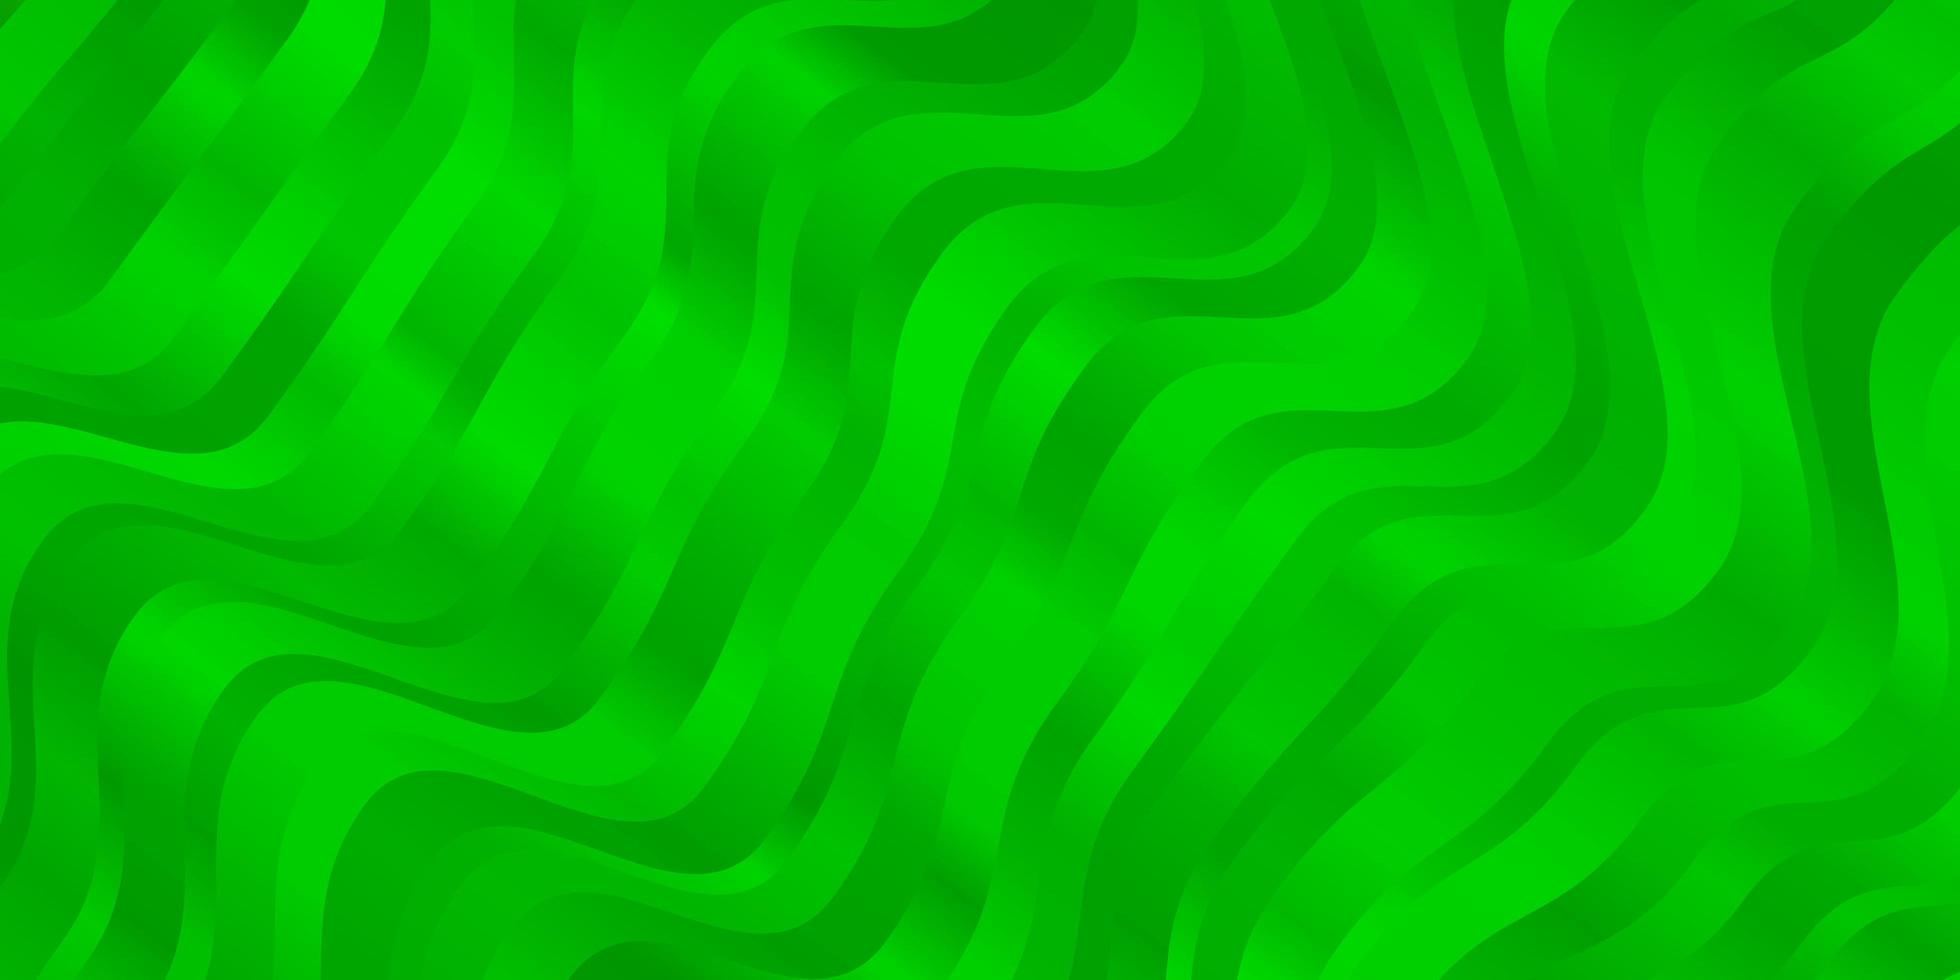 Light Green background with bows. vector